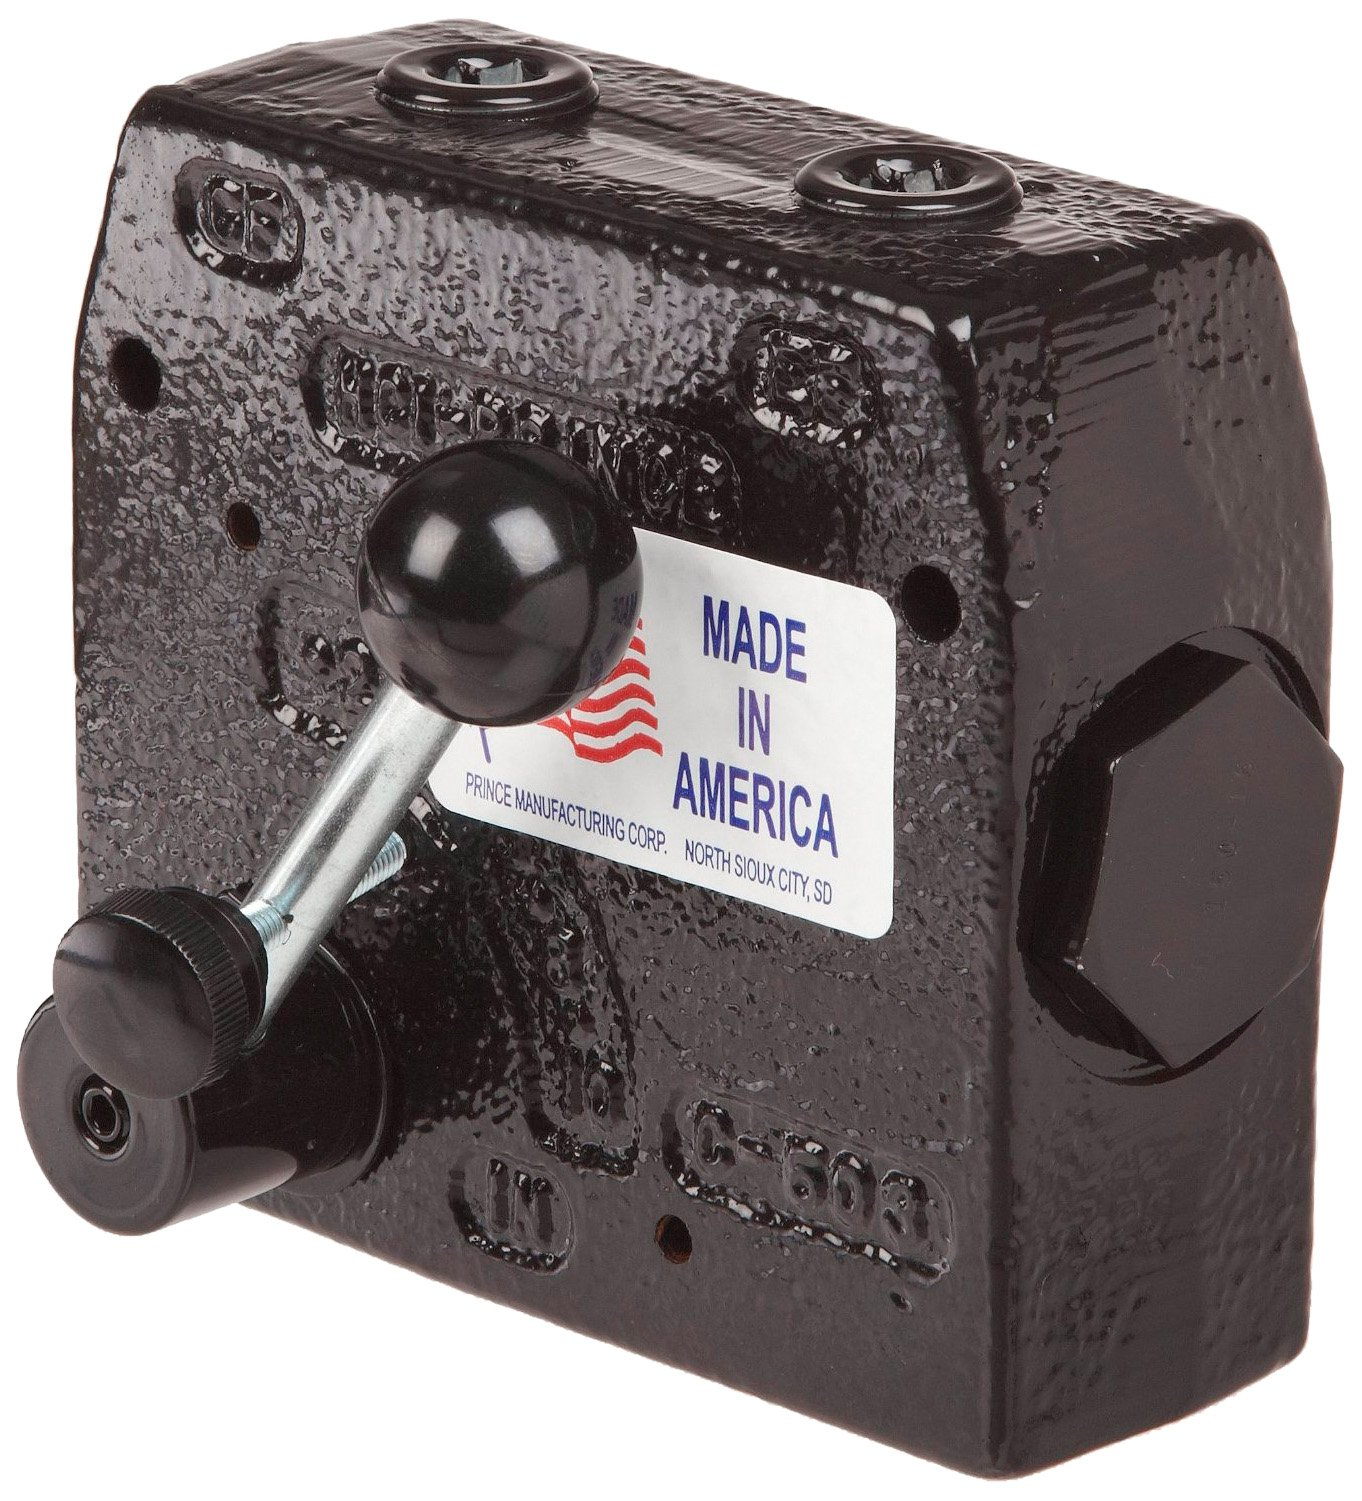 Prince RD-175-30 Flow Control Valve, Adjustable Pressure Relief, Cast Iron, 3000 psi, 0-30 gpm, 3/4'' NPTF